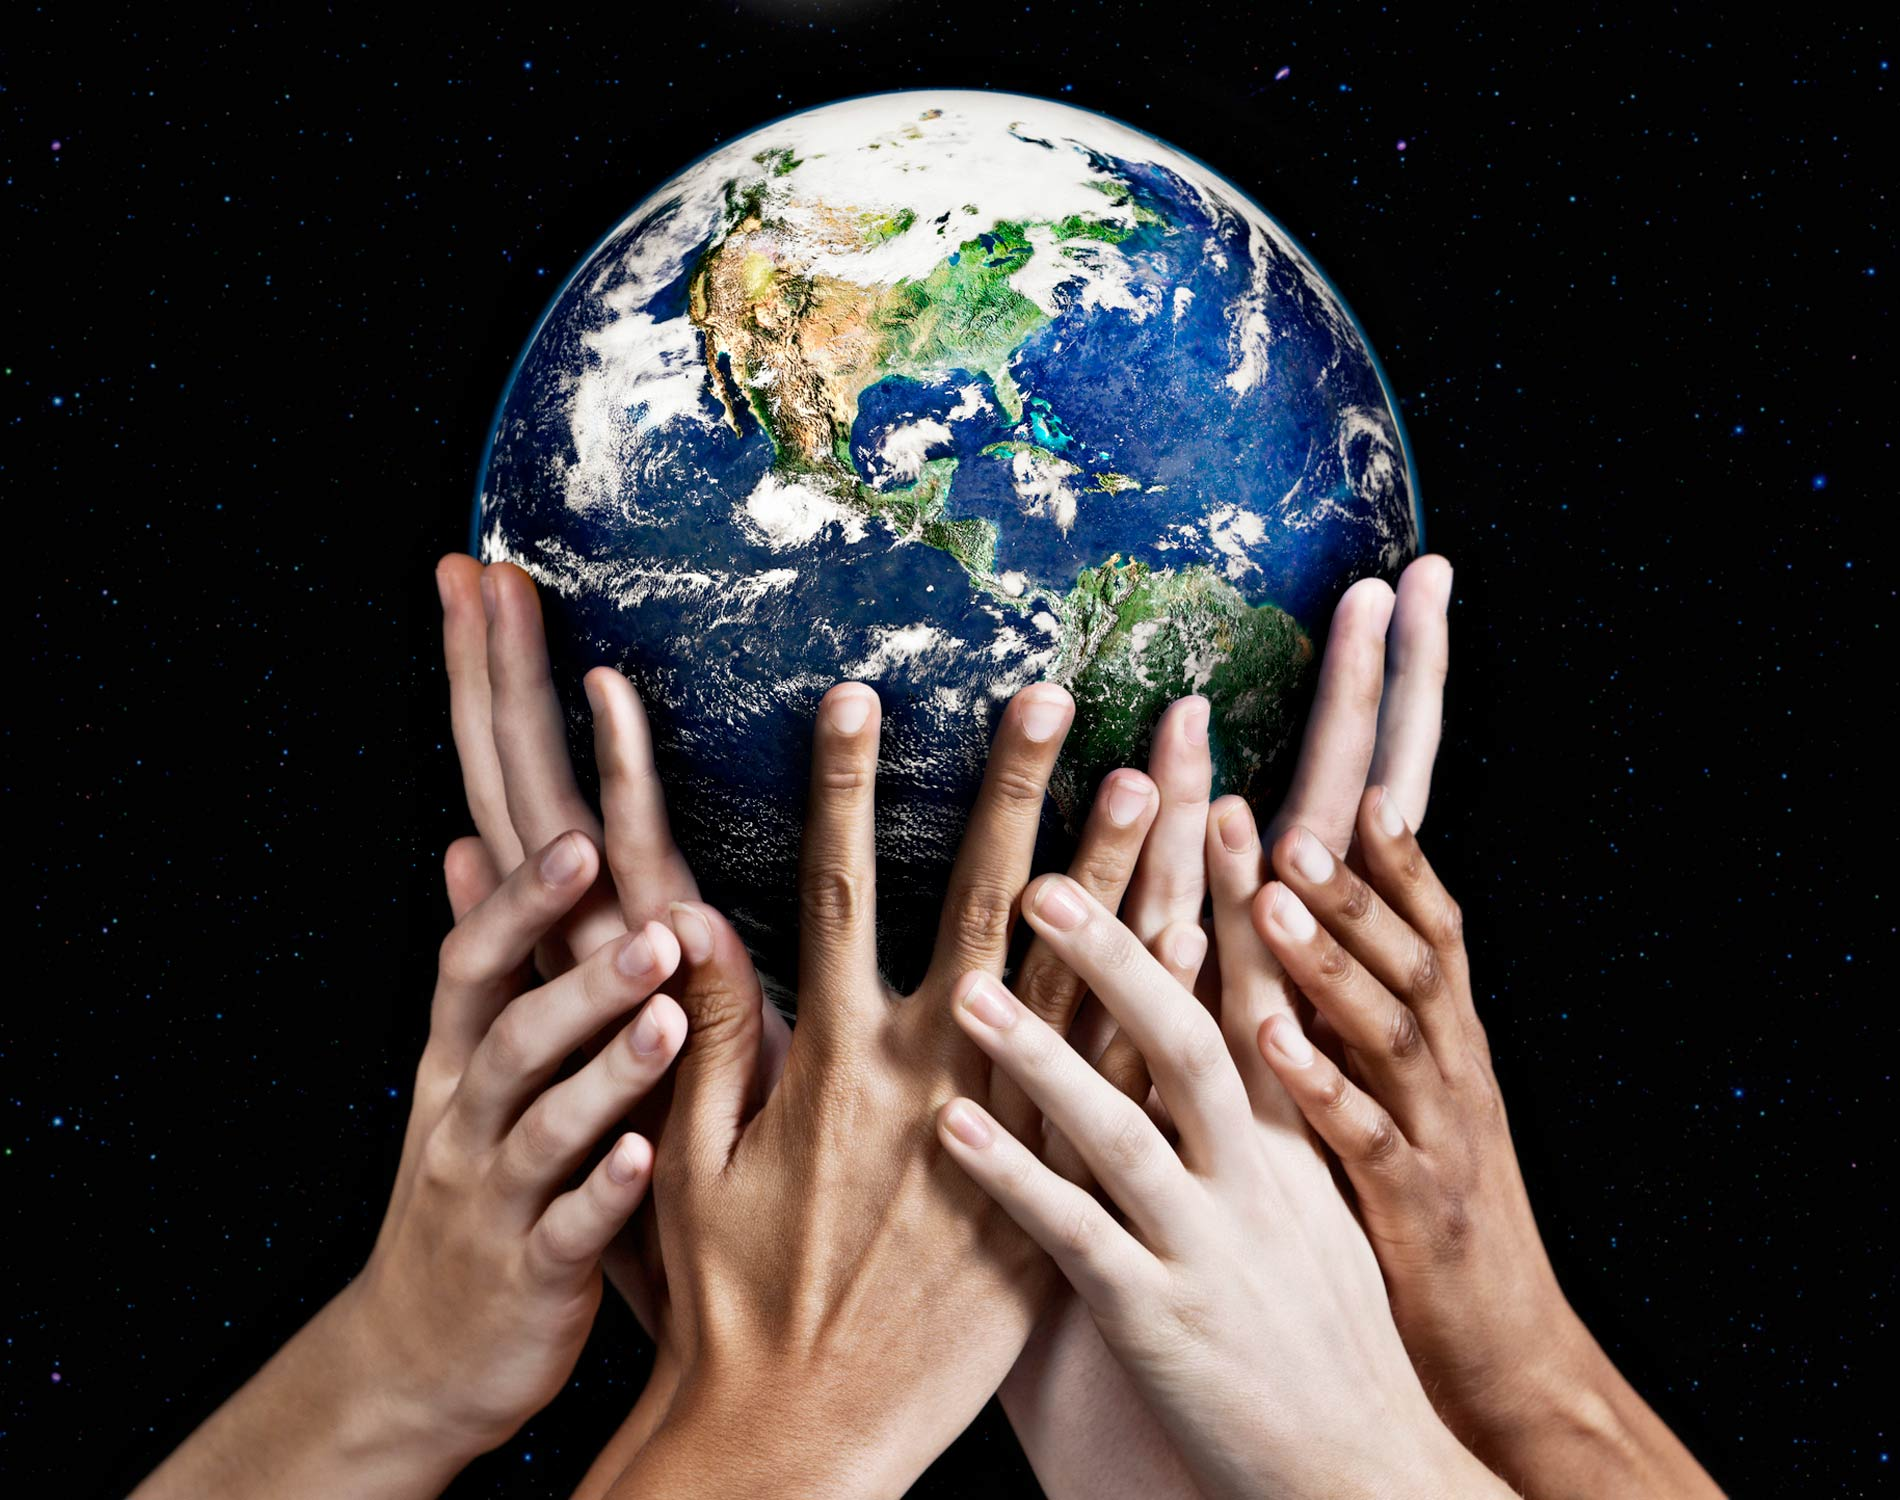 /-/media/images/website/background-images/other/hands-holding-earth.ashx